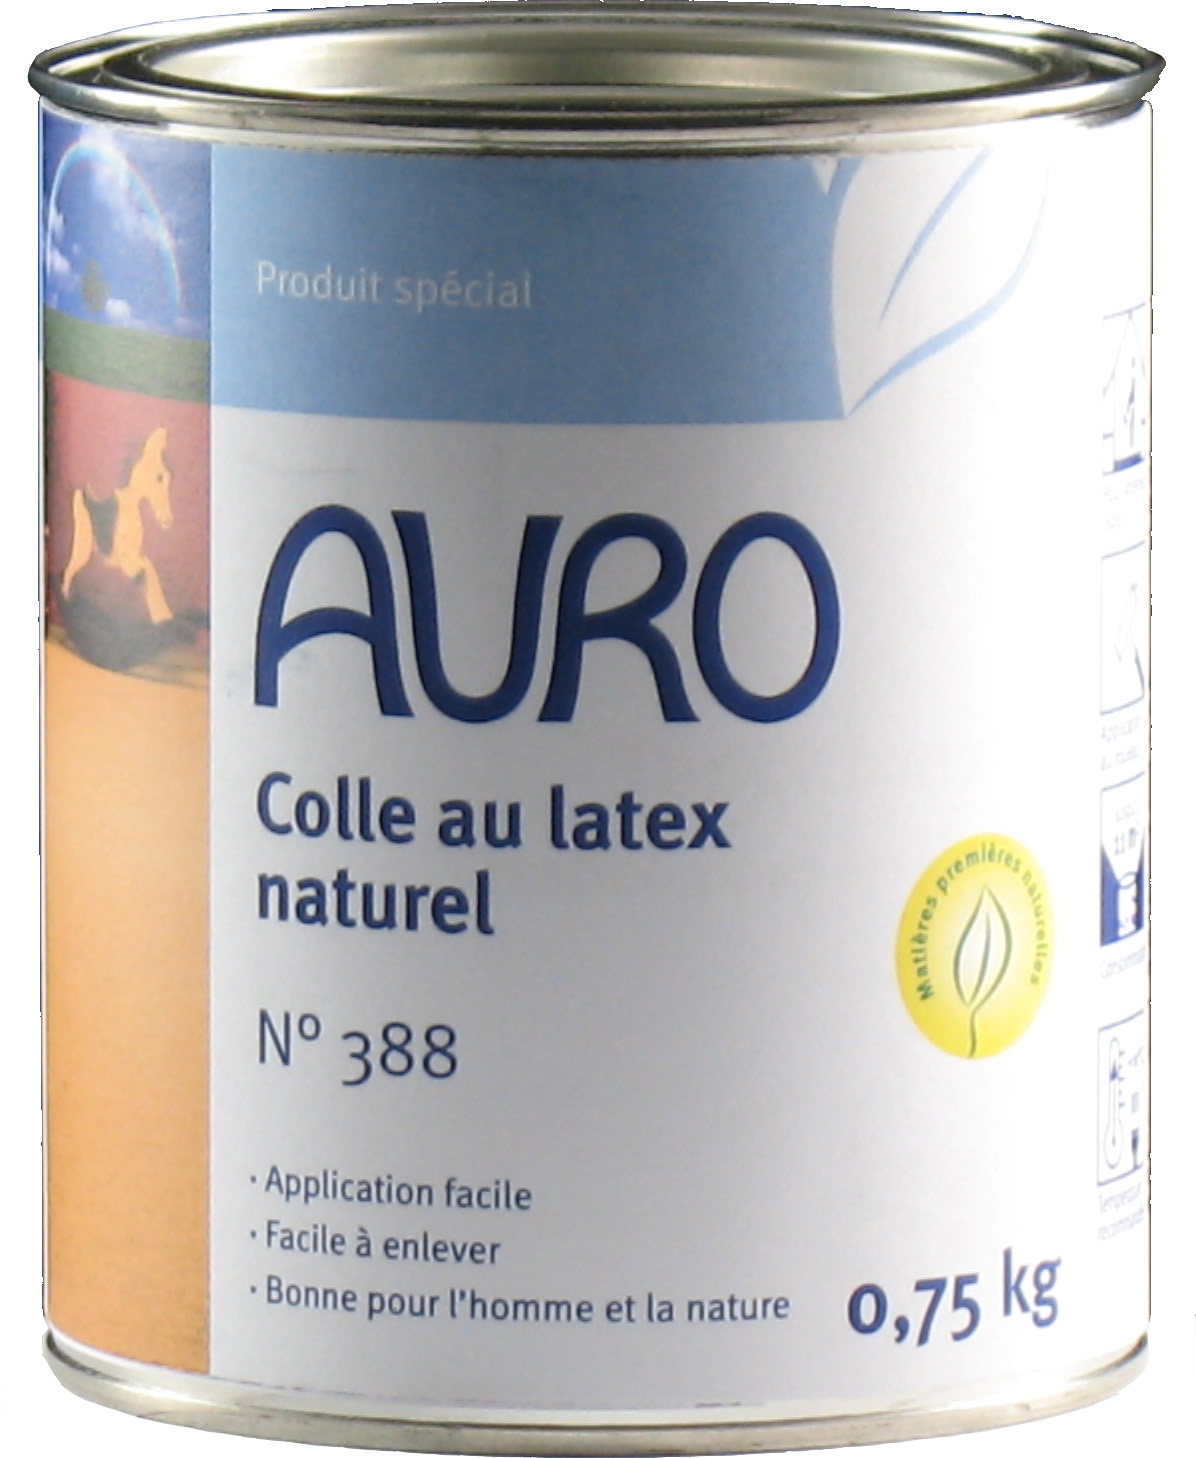 http://www.hellopro.fr/images/produit-2/6/8/2/colle-au-latex-naturel-auro-388-766286.jpg